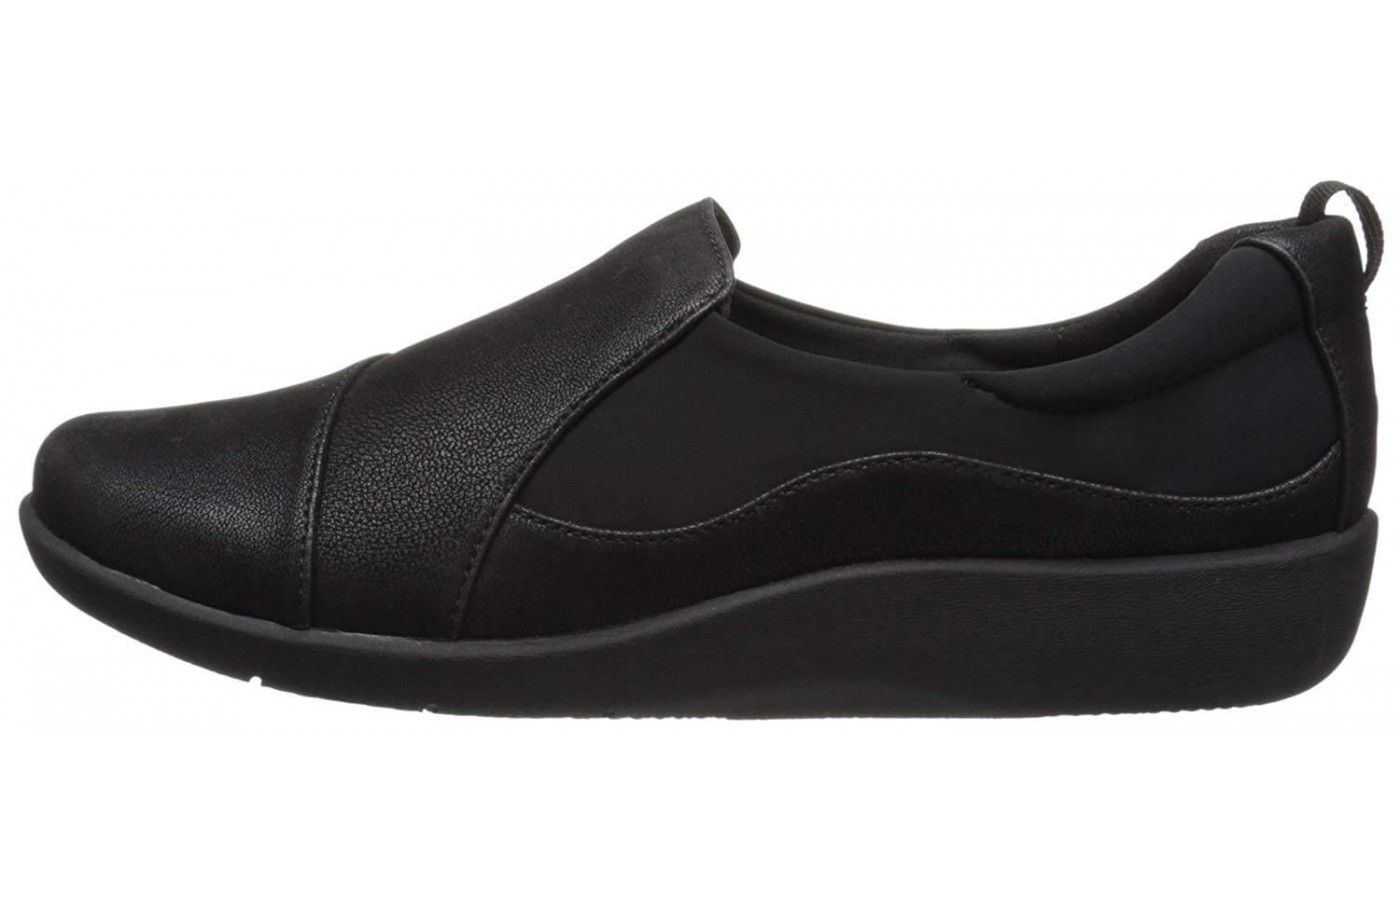 Clarks Sillian Paz Cloudstepper Left Angle